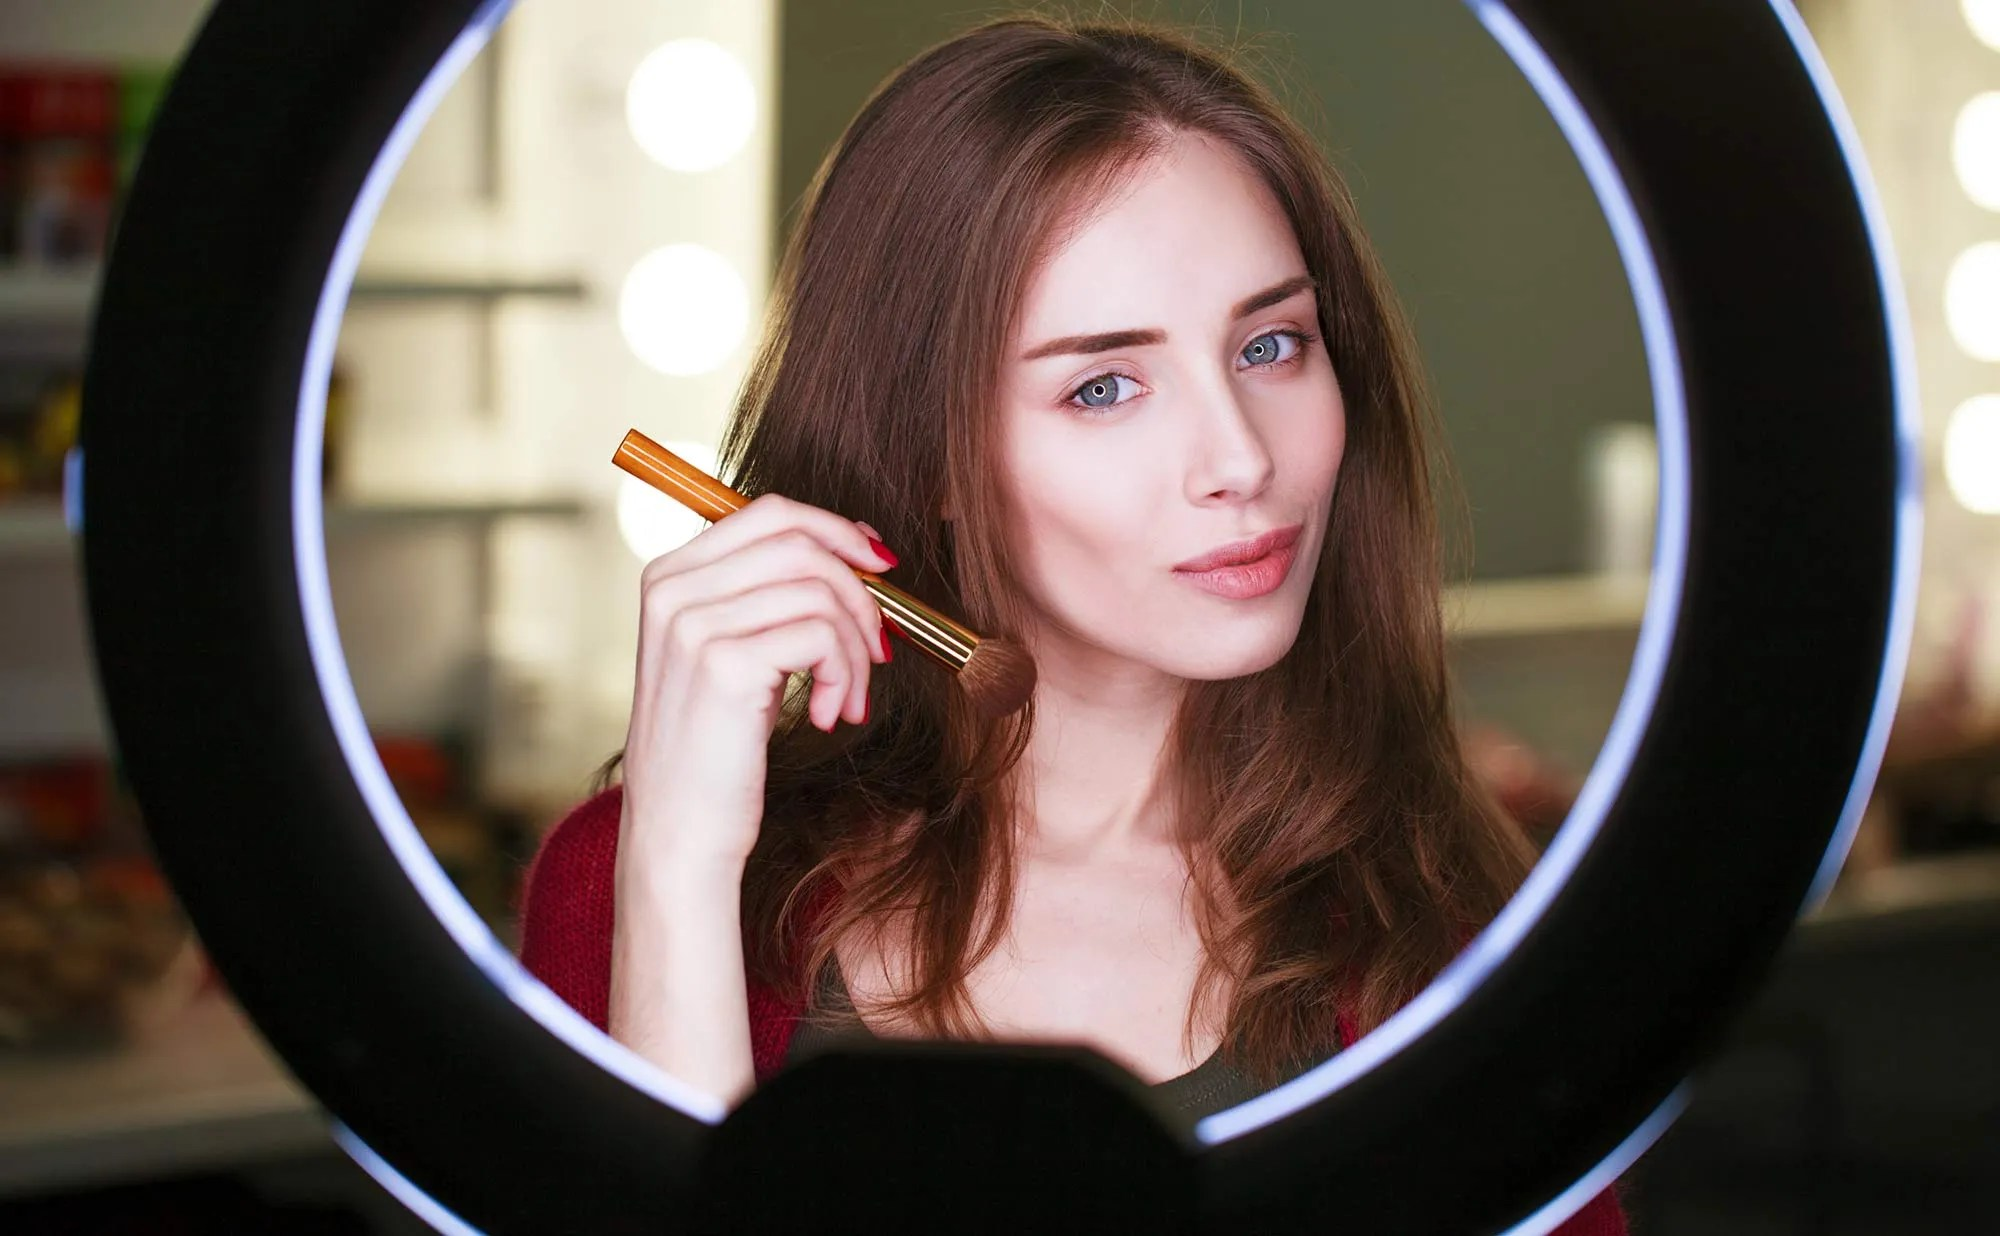 5 Best Ring Lights for Videos  Adorama Learning Center